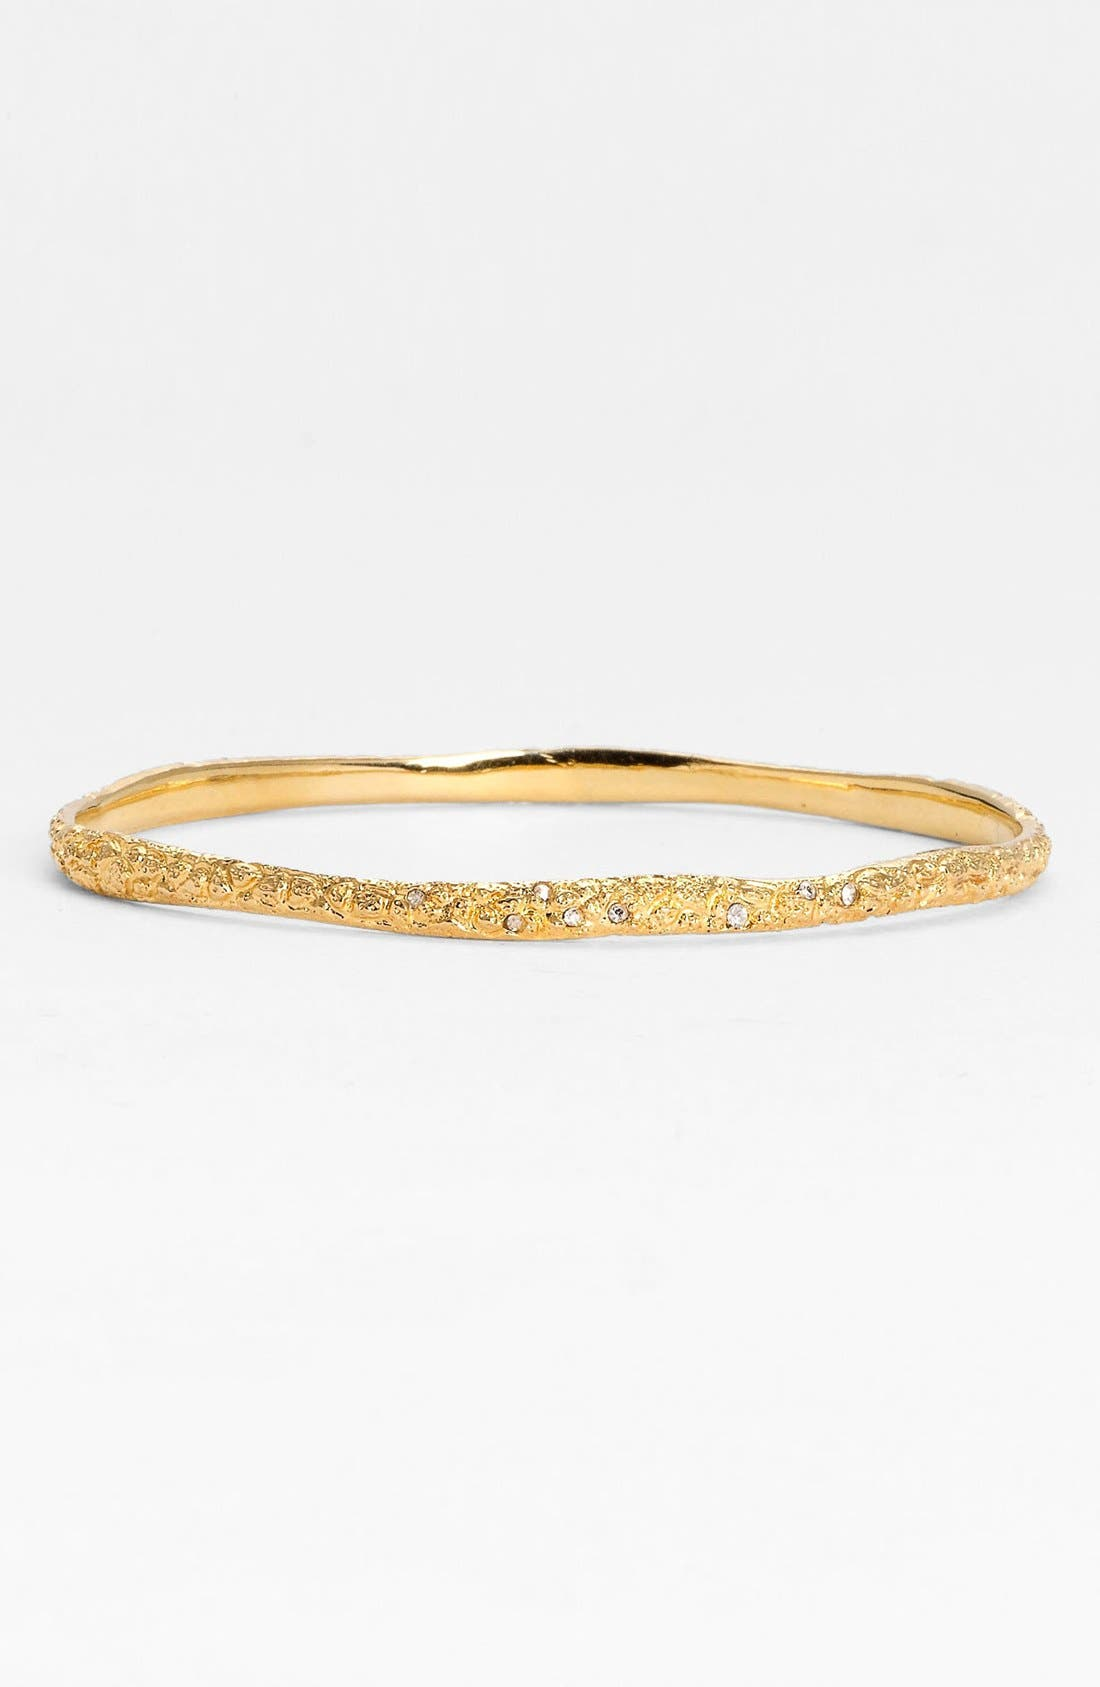 Main Image - Alexis Bittar 'Miss Havisham - Liquid Gold' Skinny Bangle